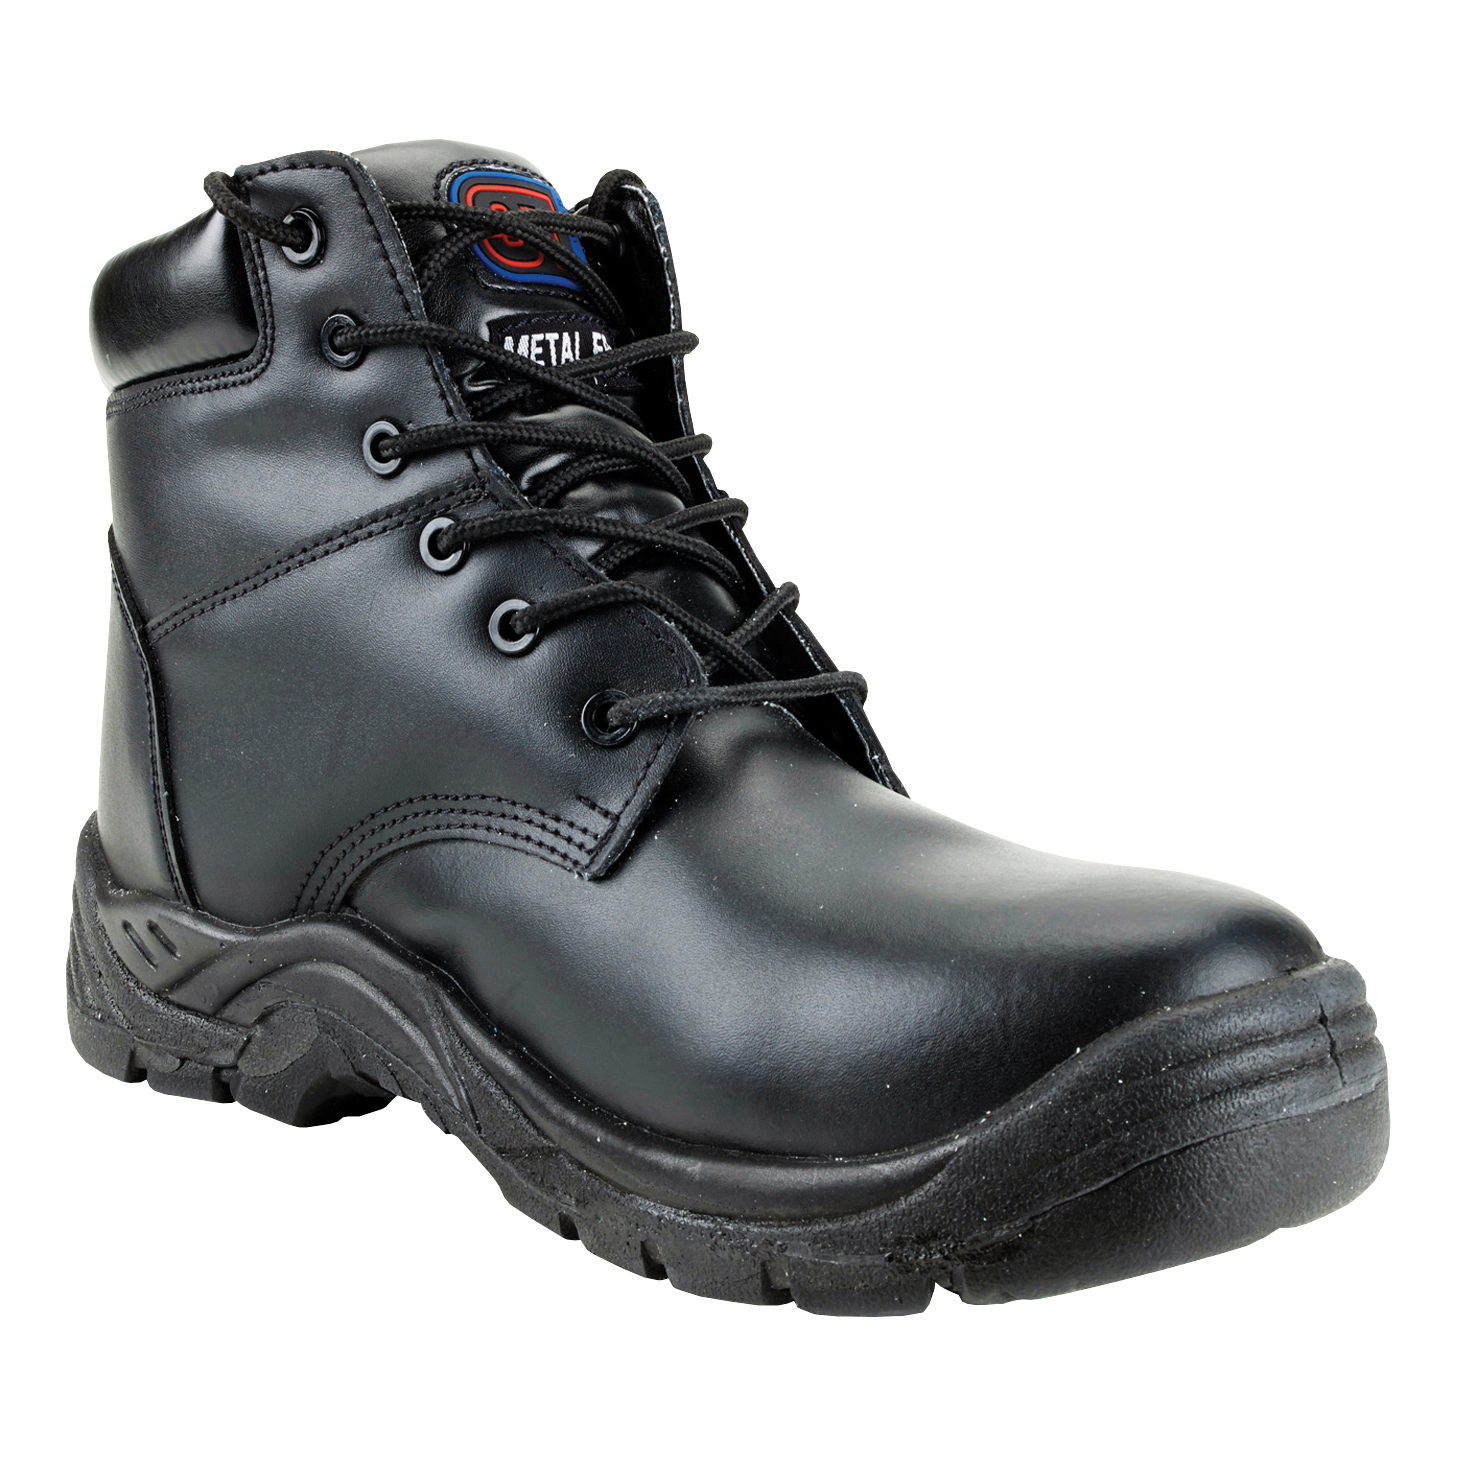 Toe Lite Boot Leather Comp Midsole Safety Toecap Metal Free Size 9 Black Approx 3 Day Leadtime